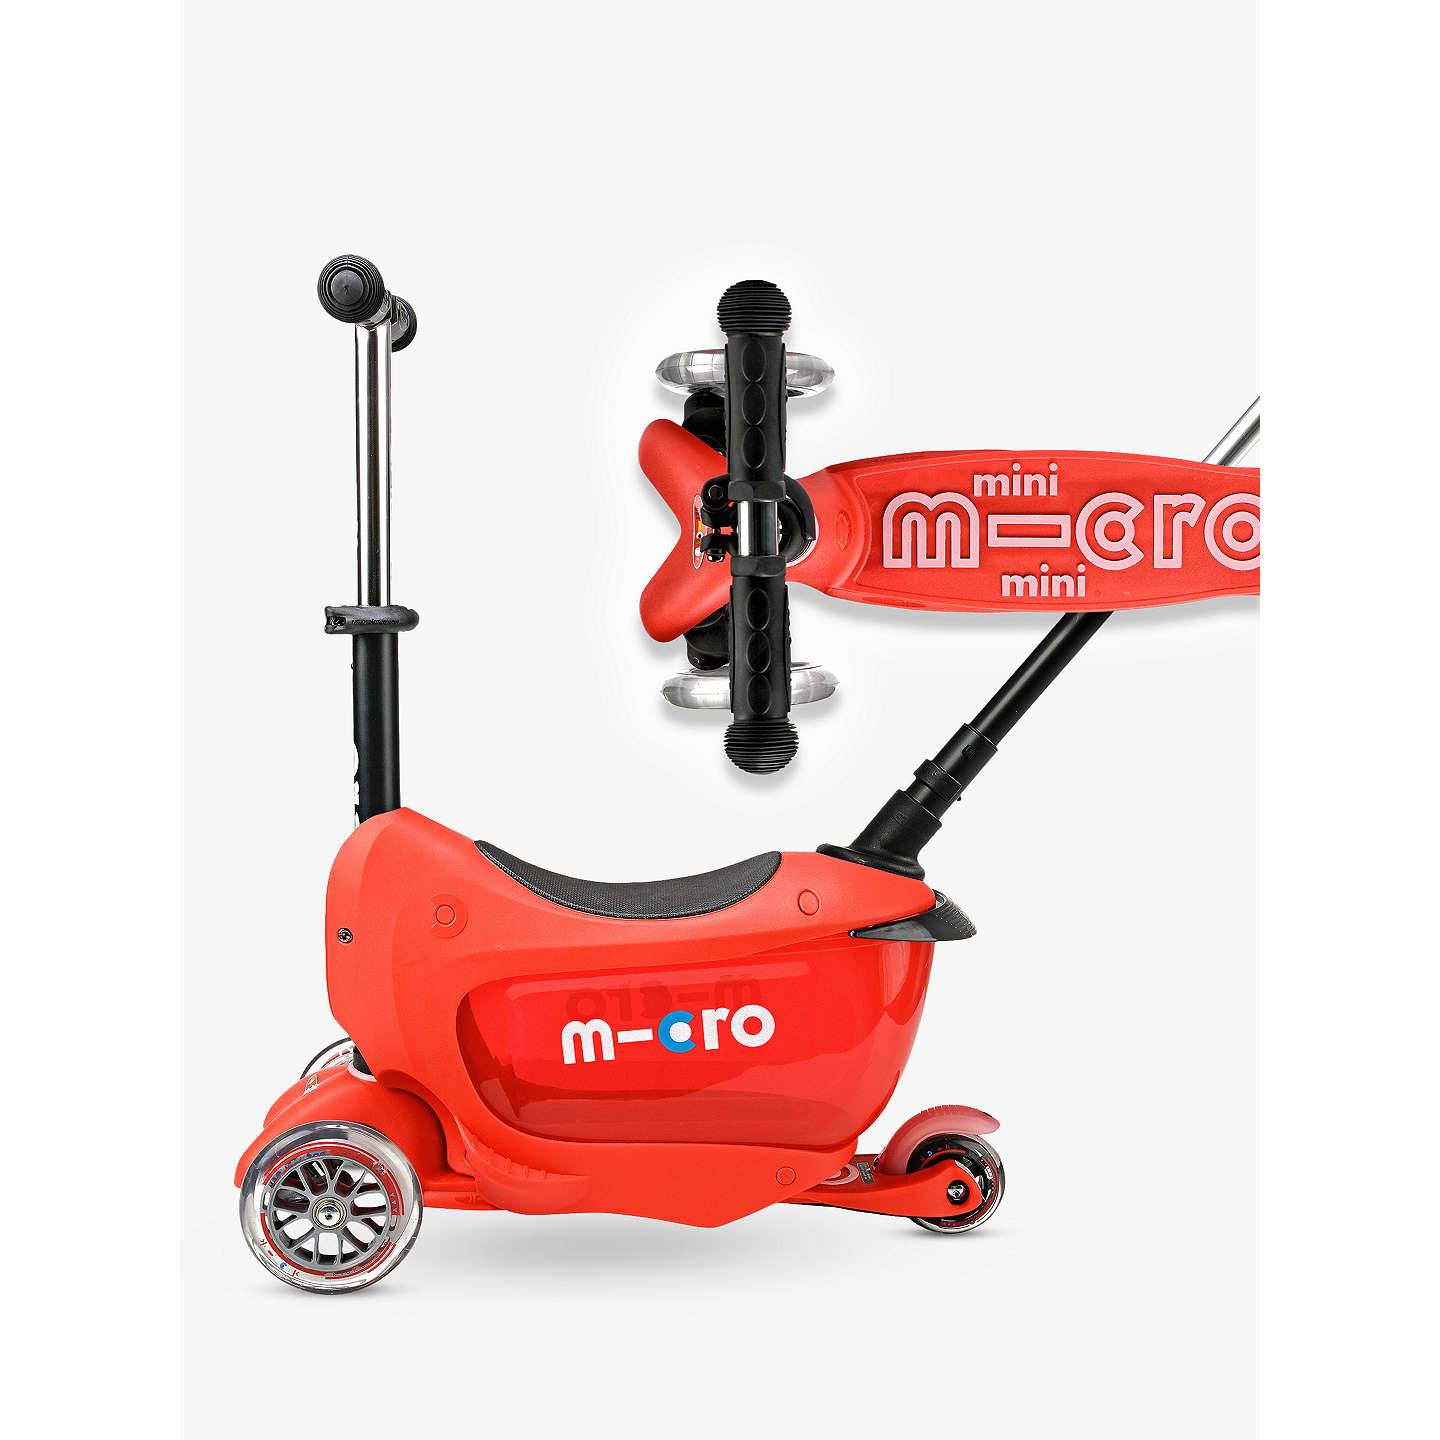 BuyMicro Mini 2 Go Deluxe Scooter, 3 - 5 years, Red Online at johnlewis.com